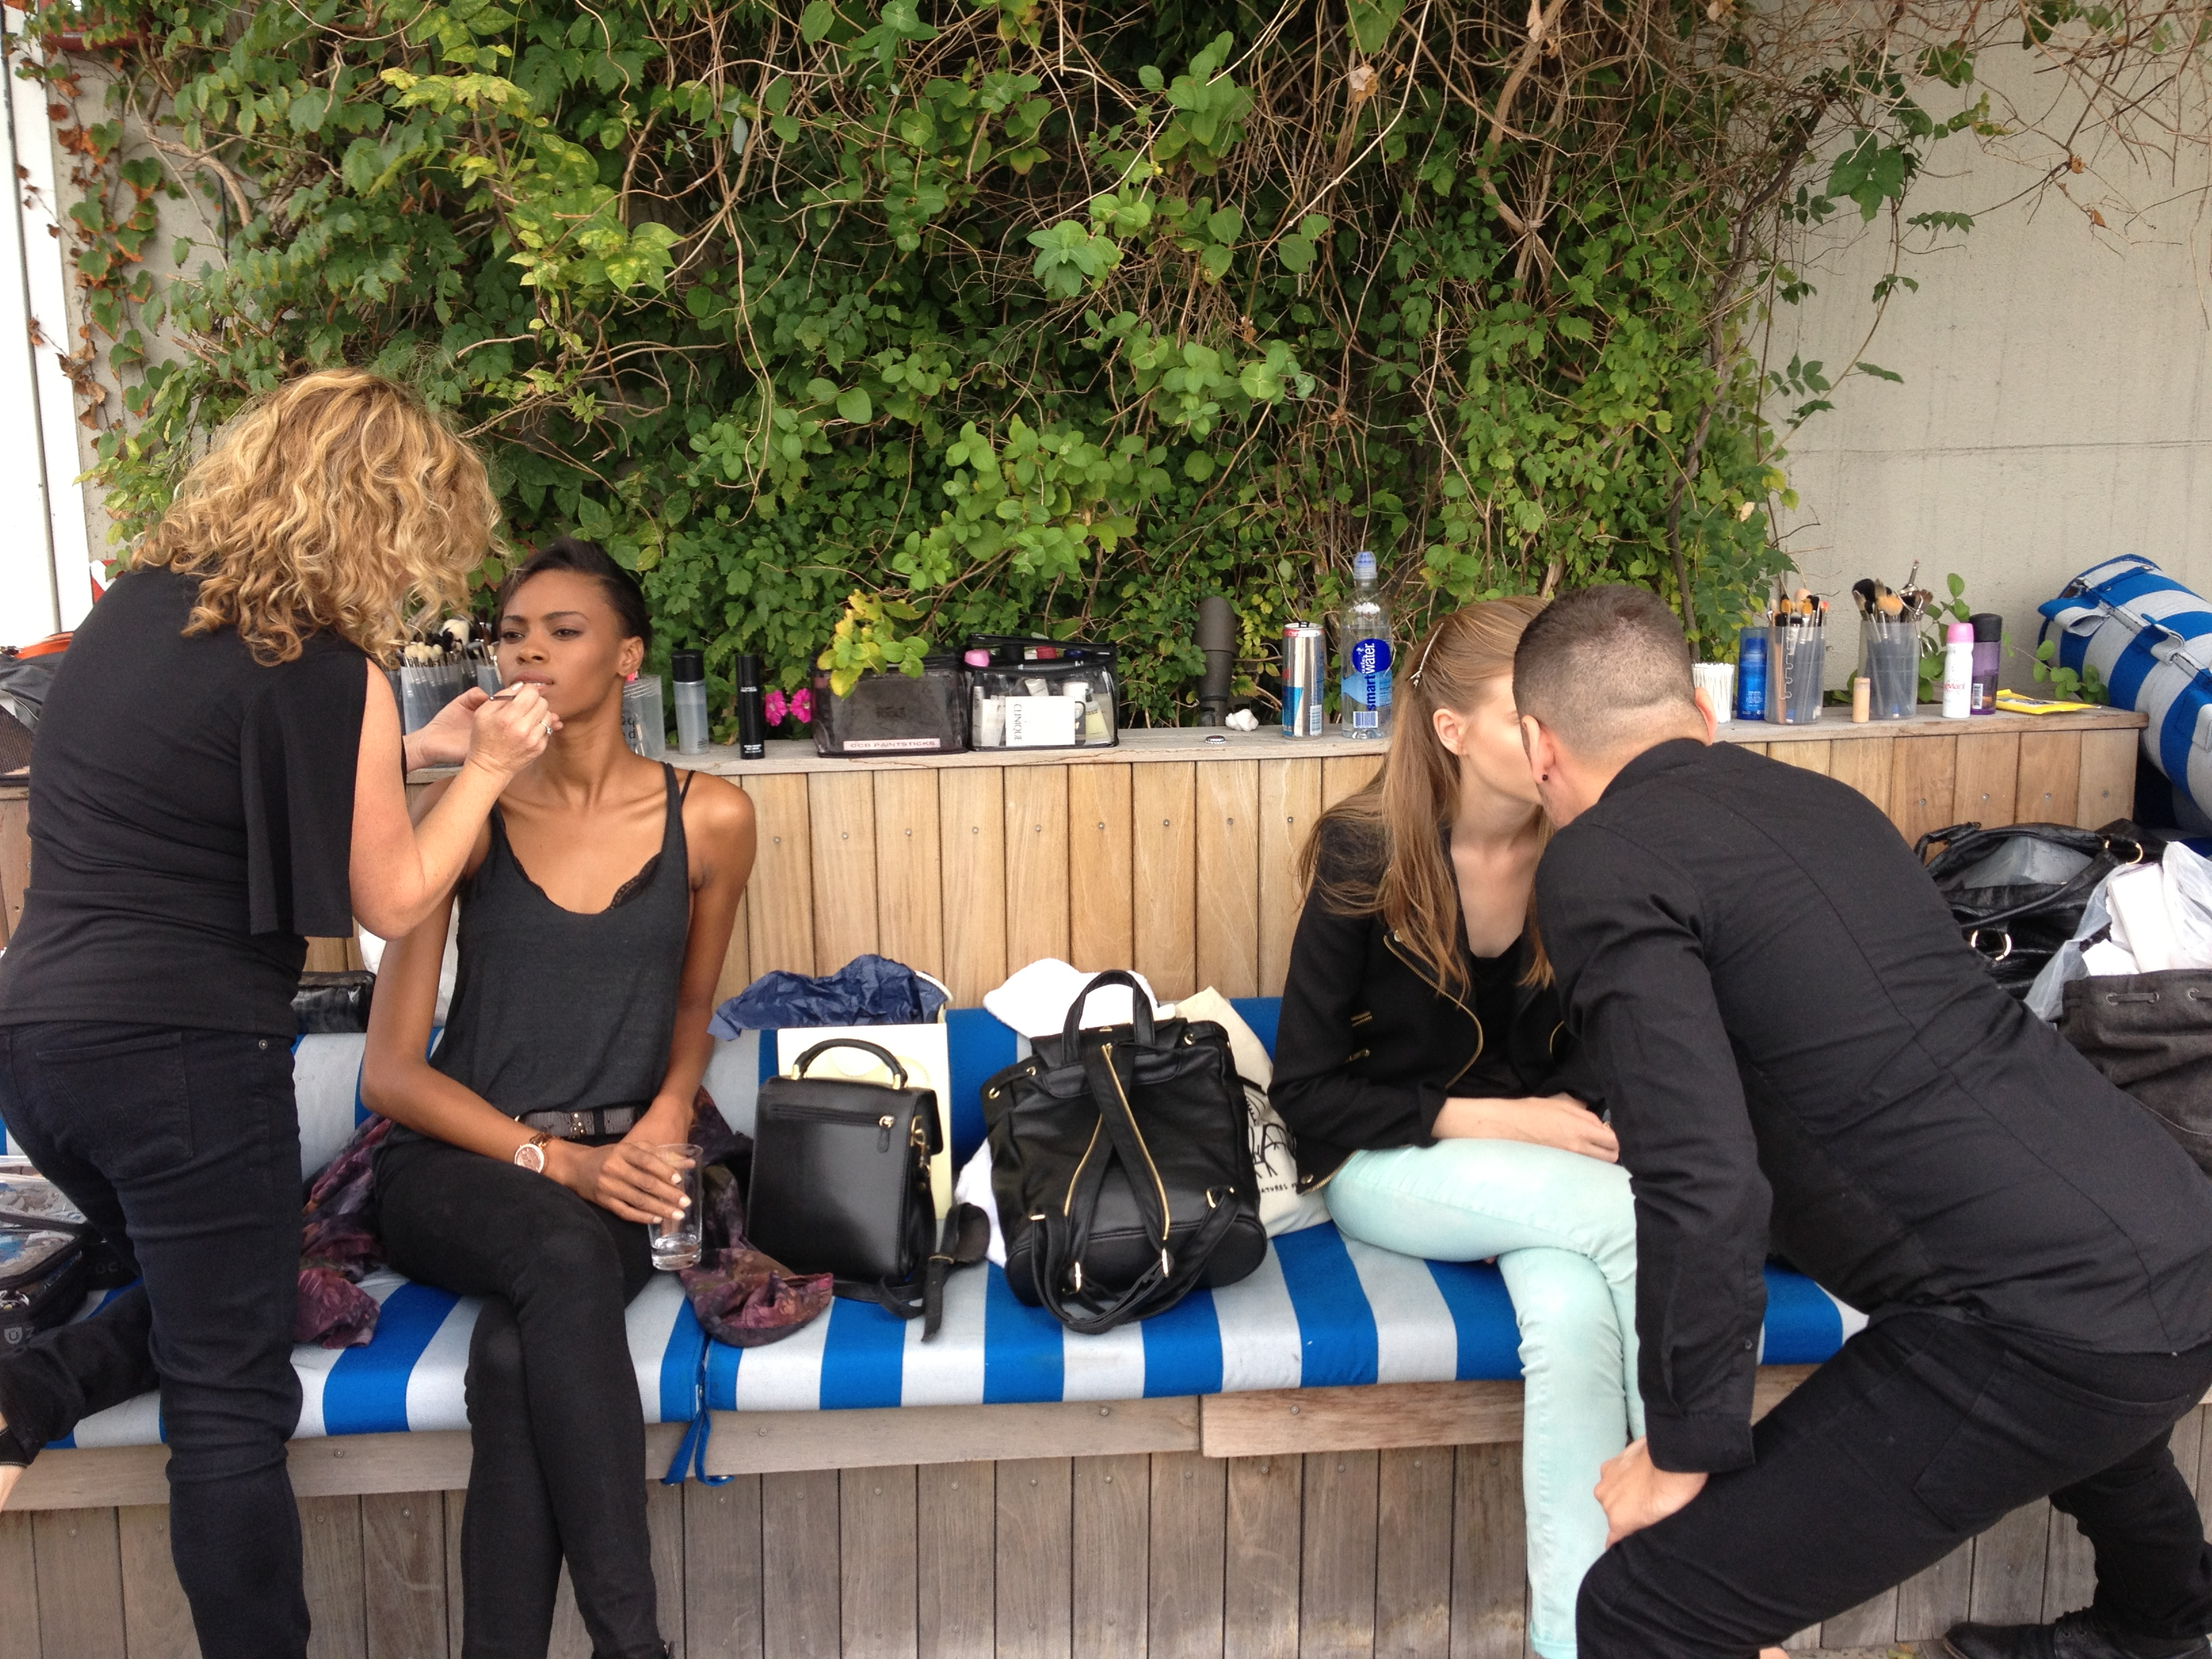 Makeup prep outside